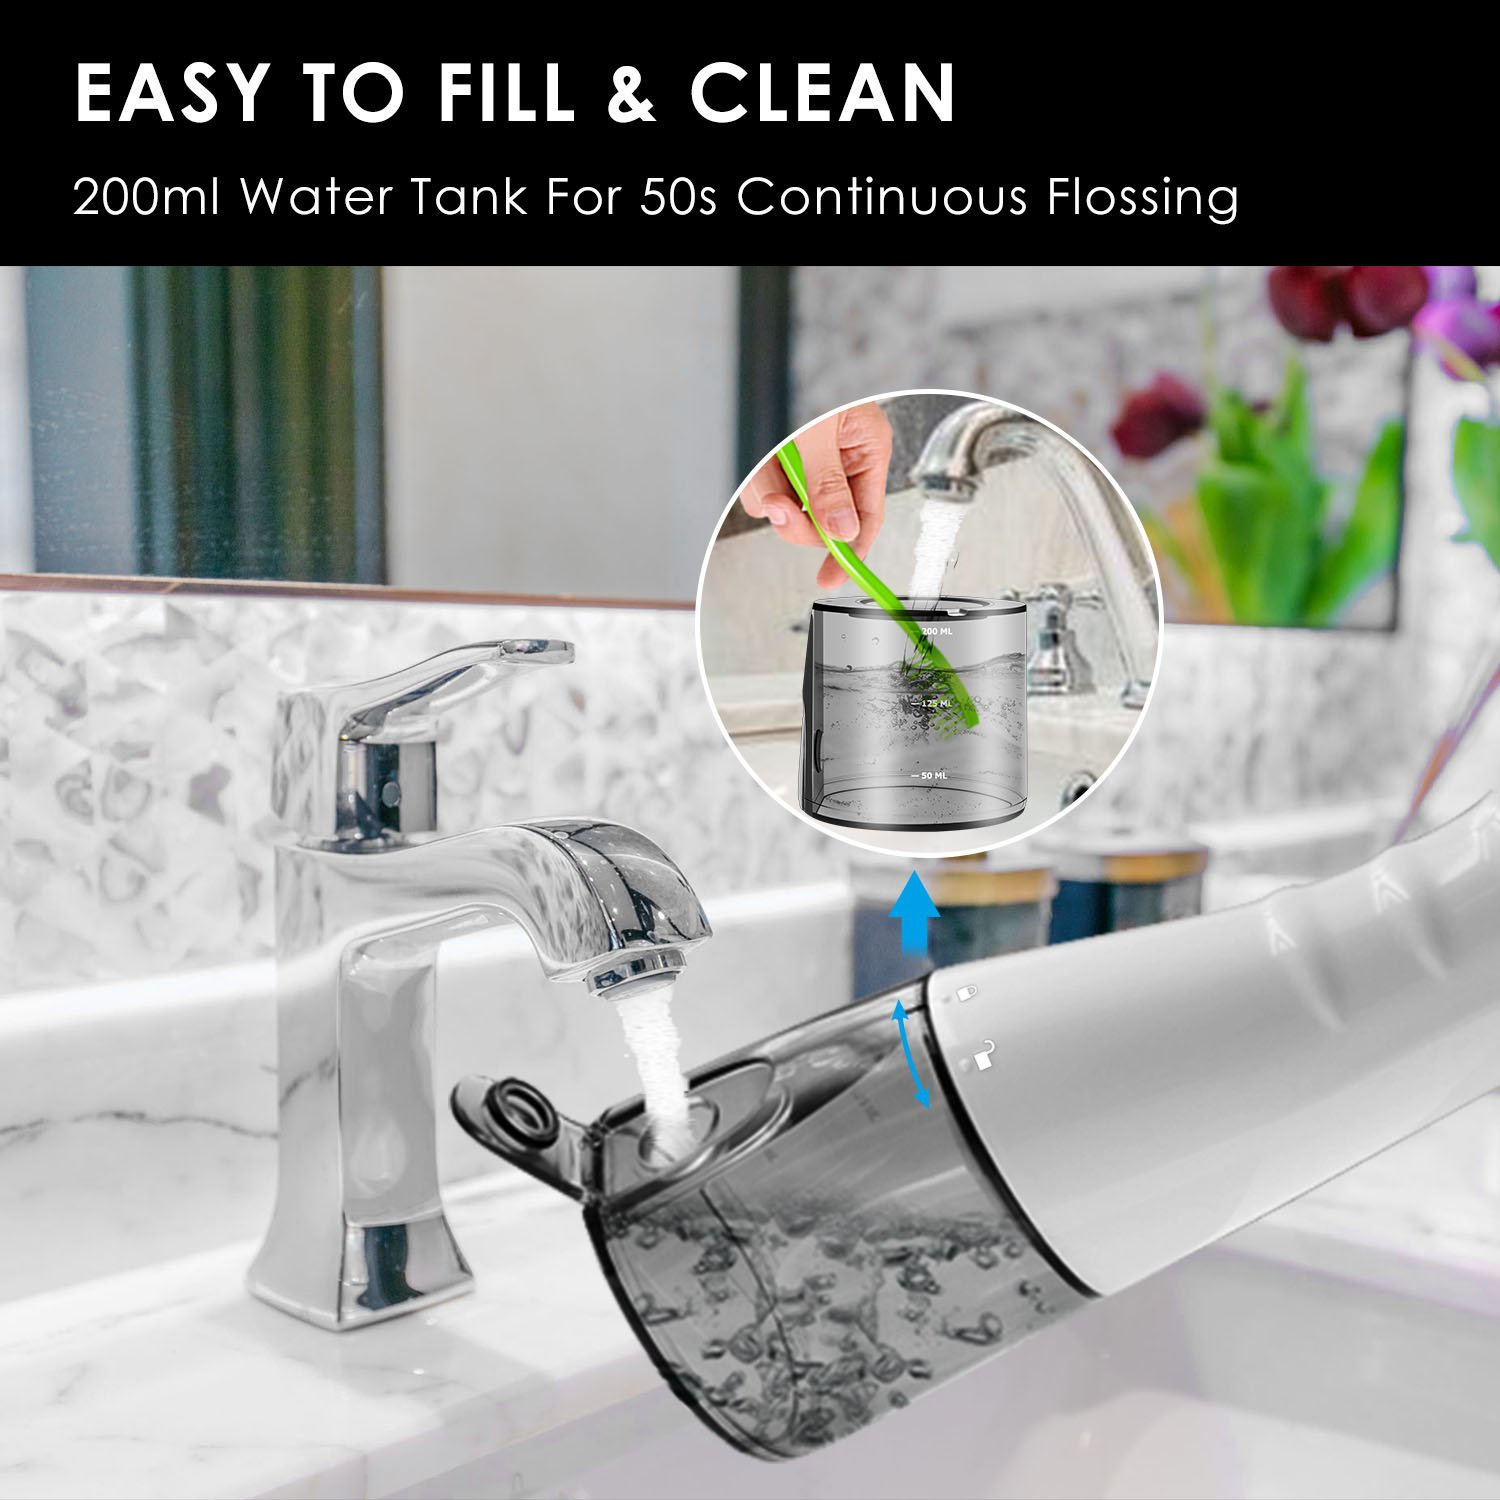 [2018 UPGRADED] Cordless Water Flosser Oral Irrigator - Zerhunt Professional Rechargable Portable Dental Water Jet With 3 Jet Tips For Braces and Teeth Whitening,Travel and Home Use by Zerhunt (Image #5)